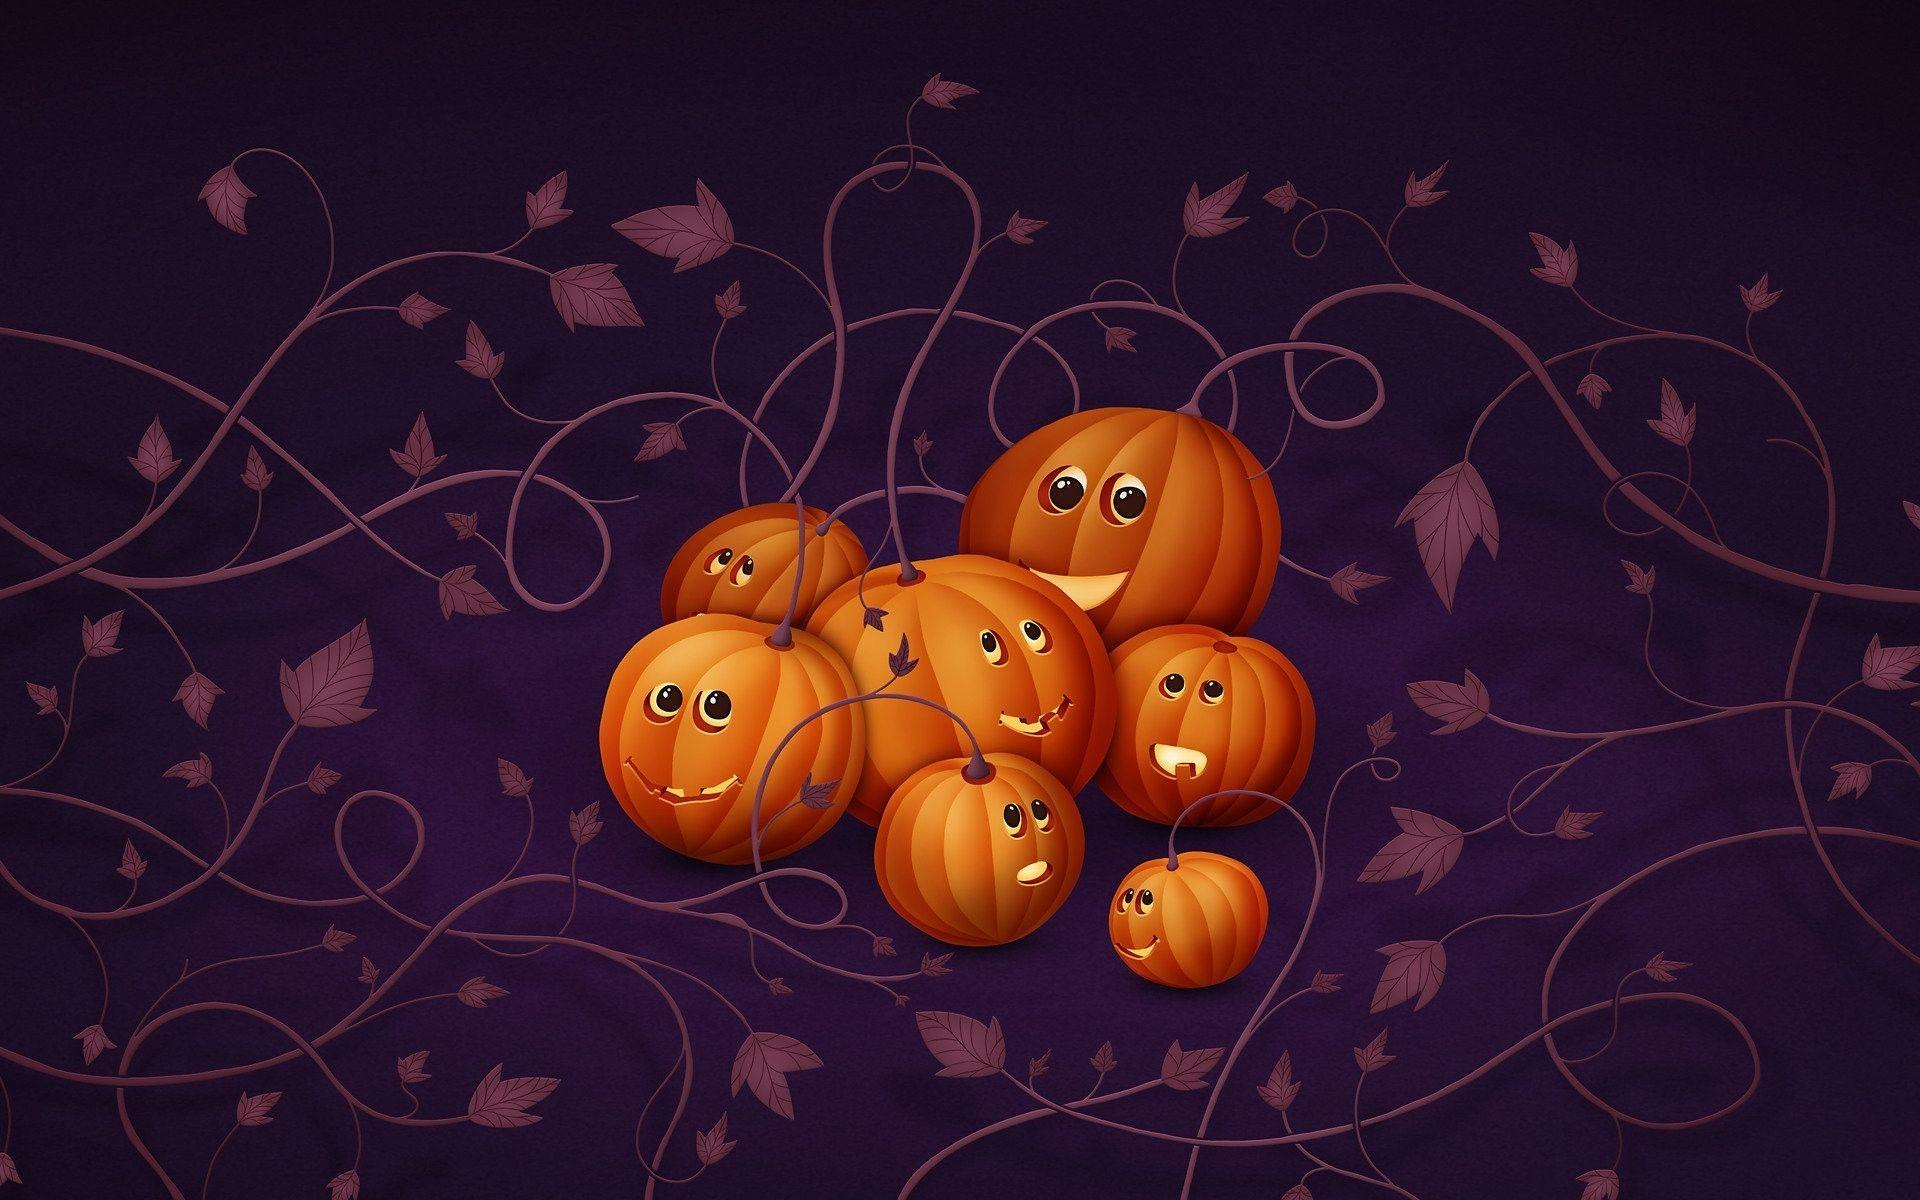 Free Computer Wallpaper Halloween